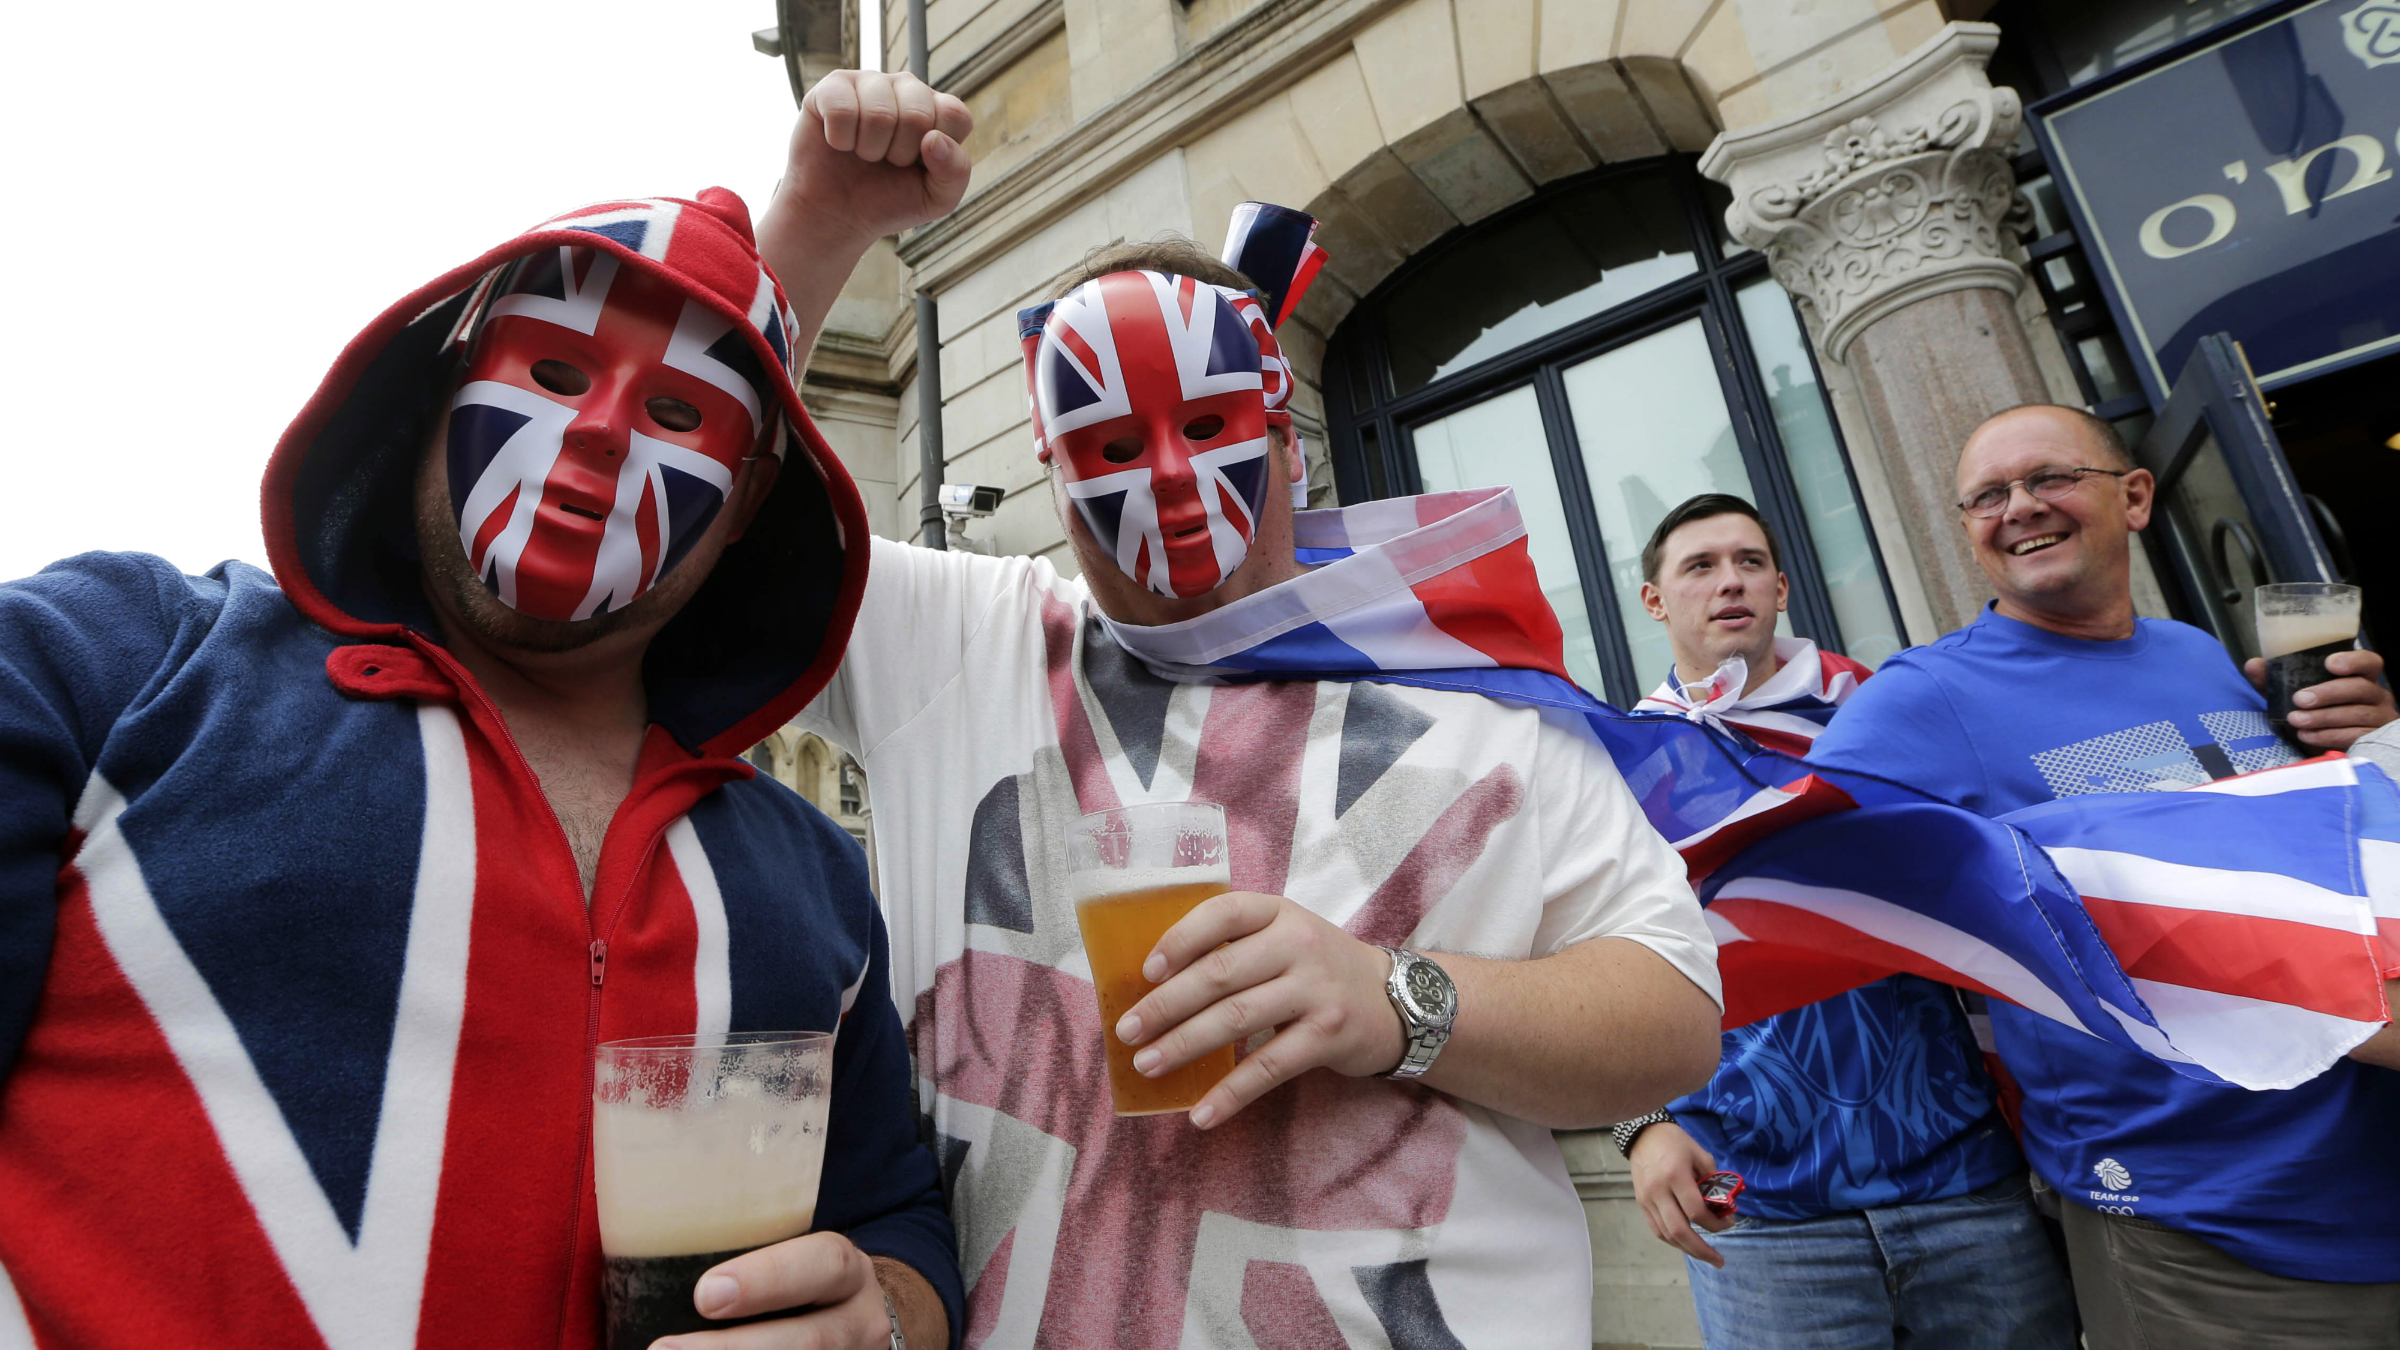 British supporters drink beer outside a pub prior to the start of the men's group A soccer match between Britain and Uruguay, at the Millennium Stadium in Cardiff, Wales, at the 2012 London Summer Olympics, Wednesday, Aug. 1, 2012. (AP Photo/Luca Bruno